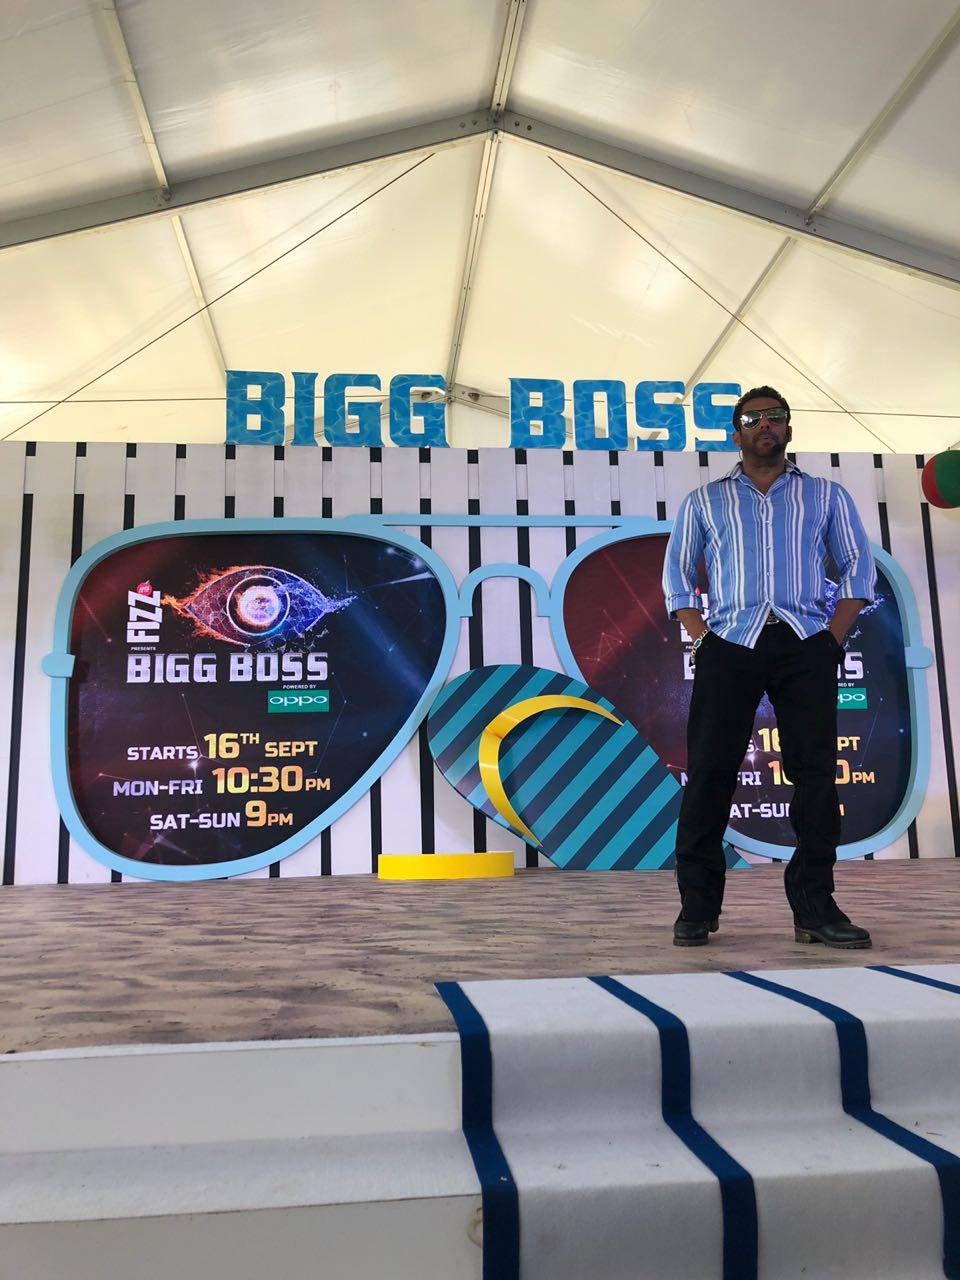 Bigg Boss 12 Press Conference, Goa!